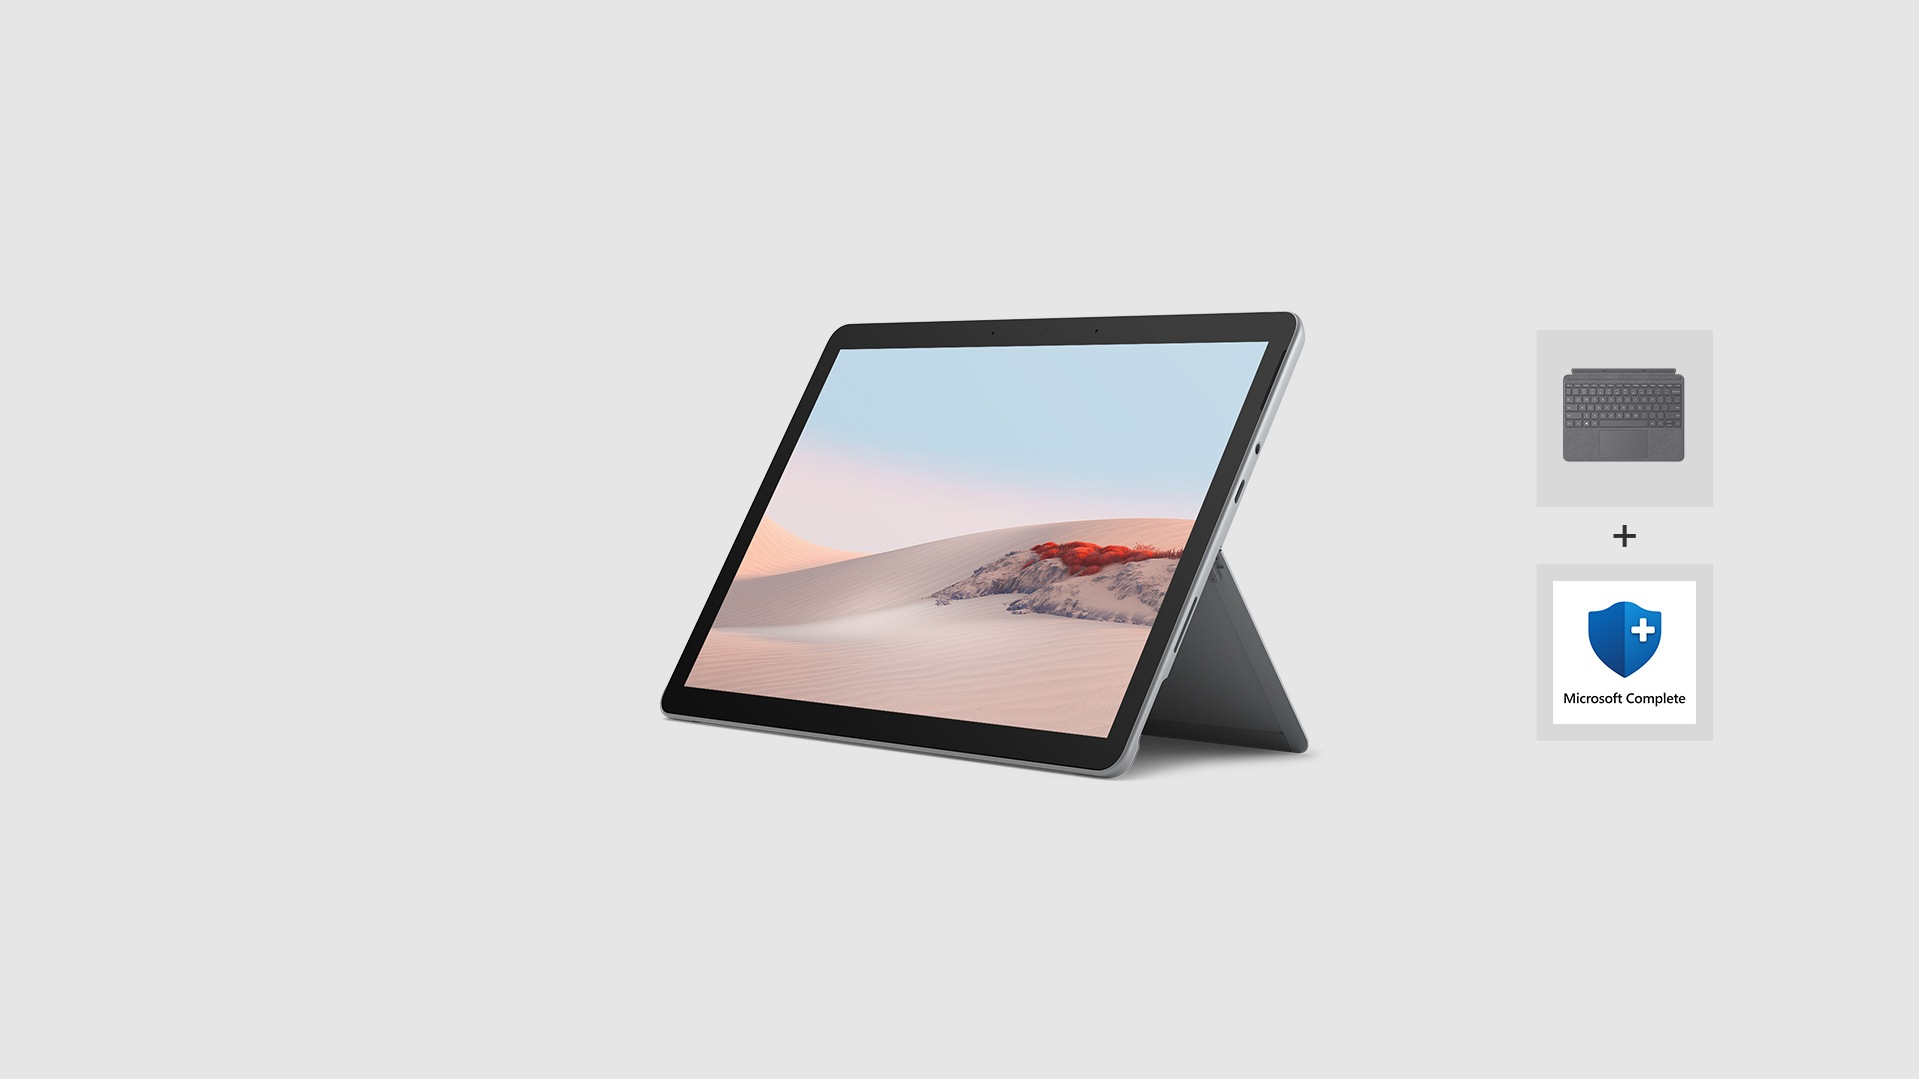 Surface Go 2 with Surface Go Type Cover and Microsoft Complete for Business Logo